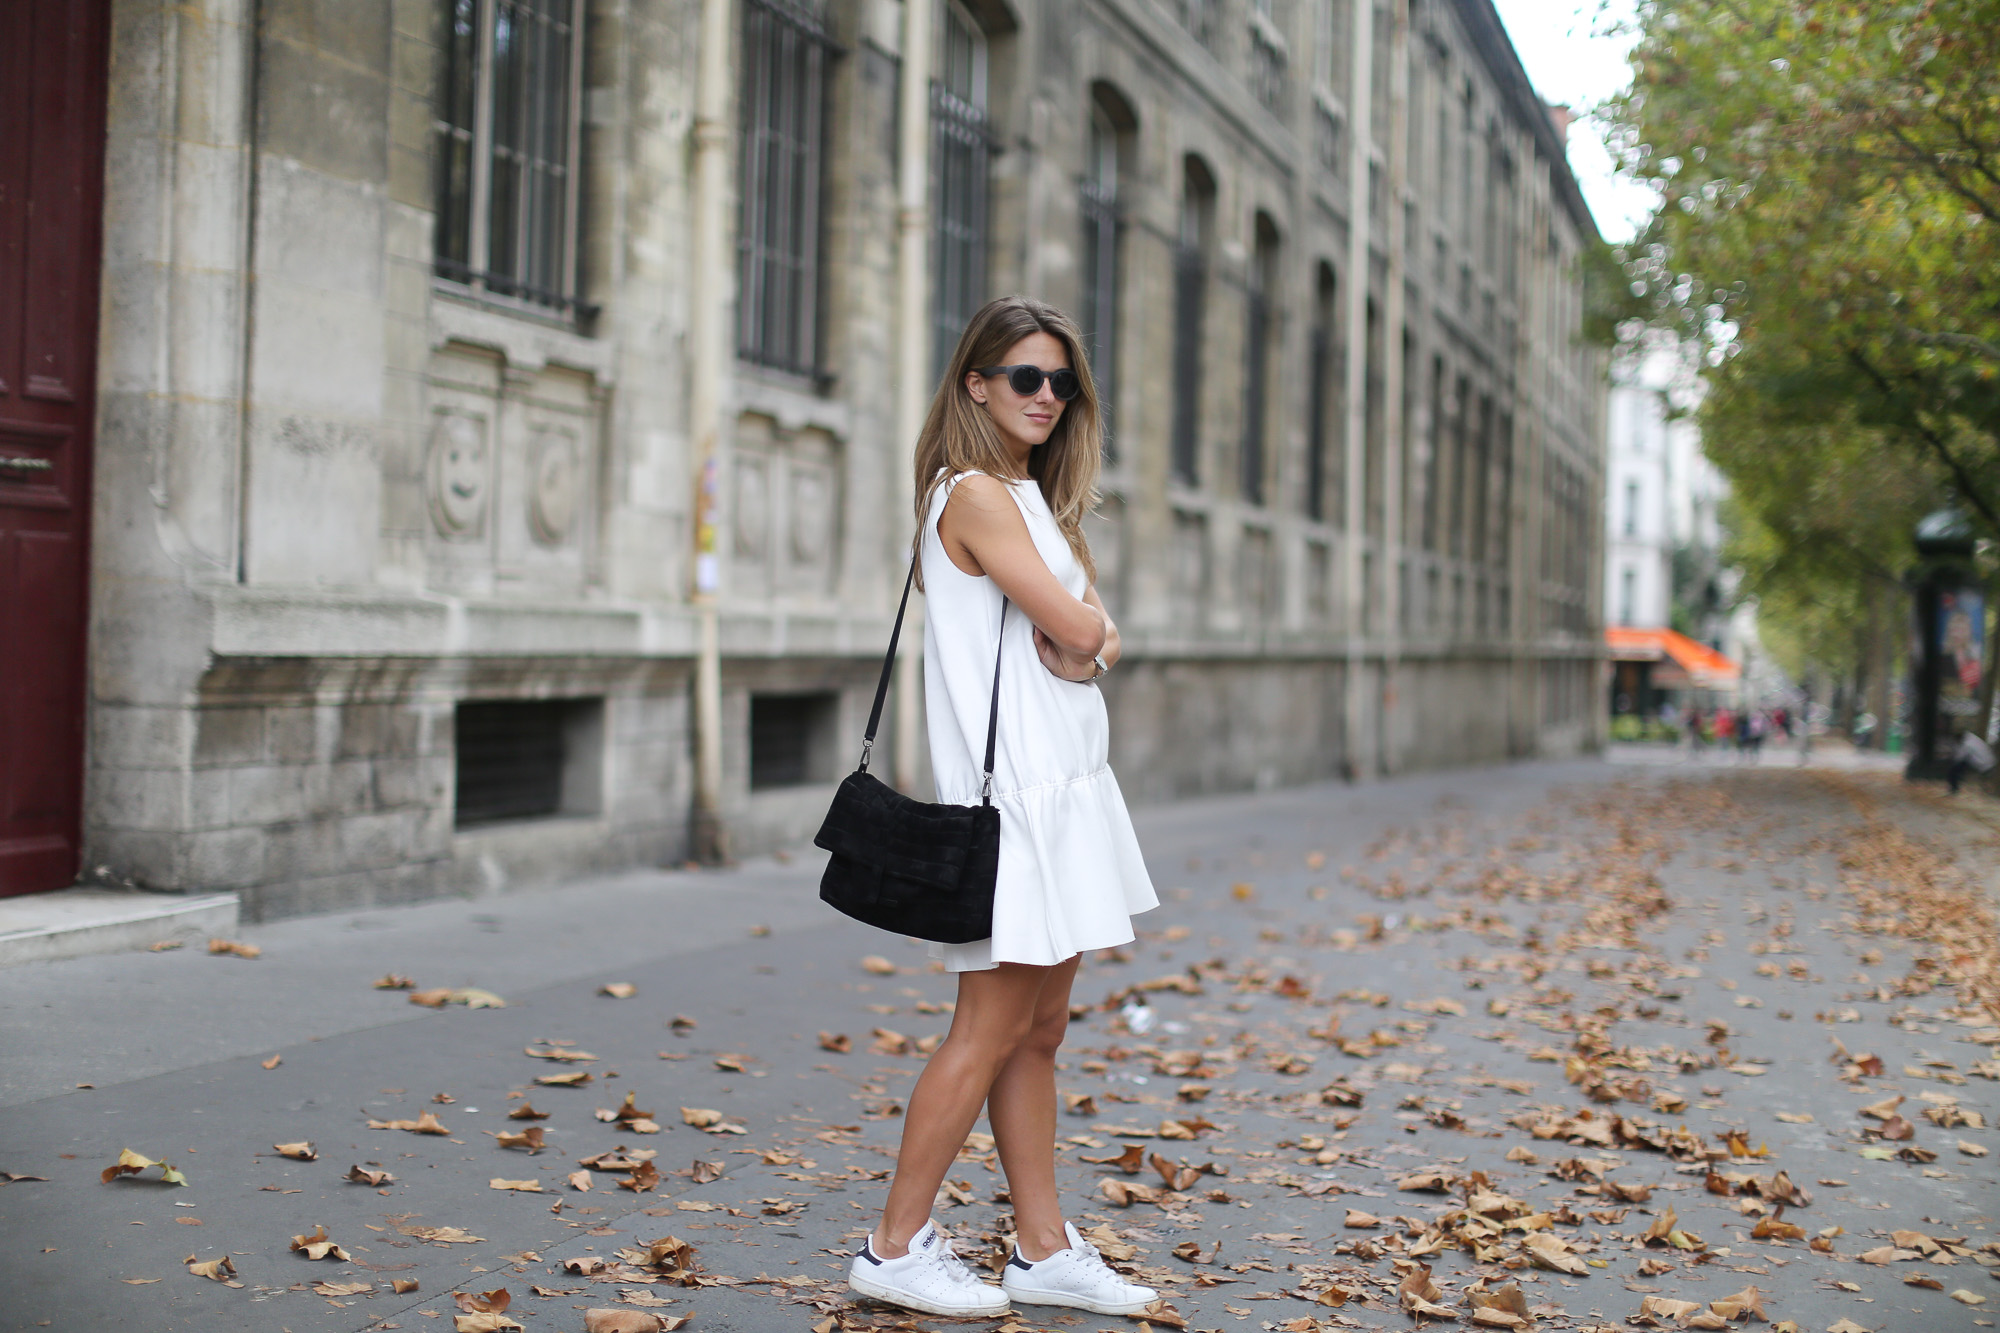 Clochet_paris_h&m_trend_white_neoprene_dress_adidas_stan_smith-1-14